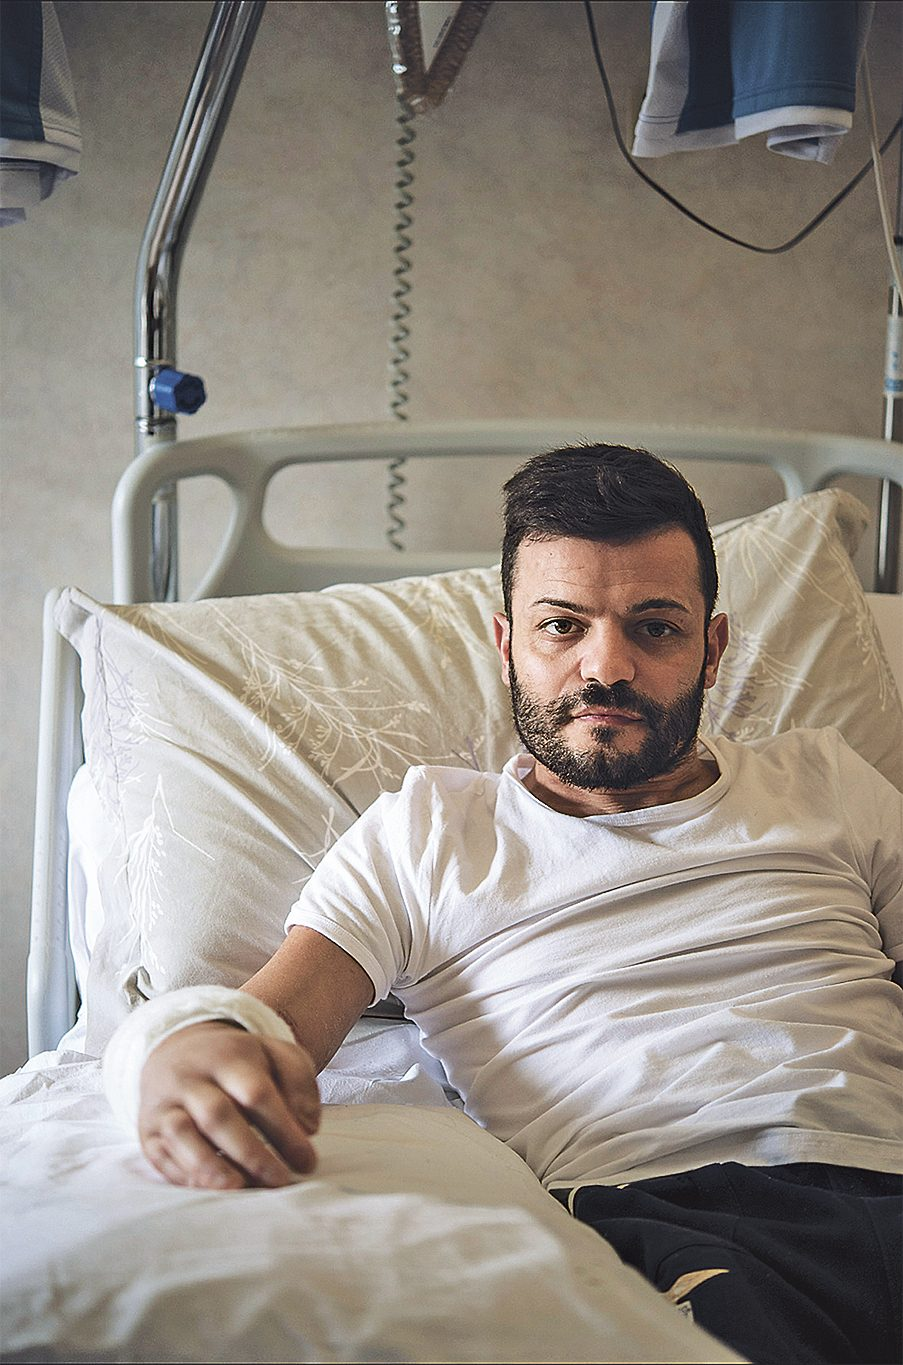 Giampaolo Matrone in the hospital